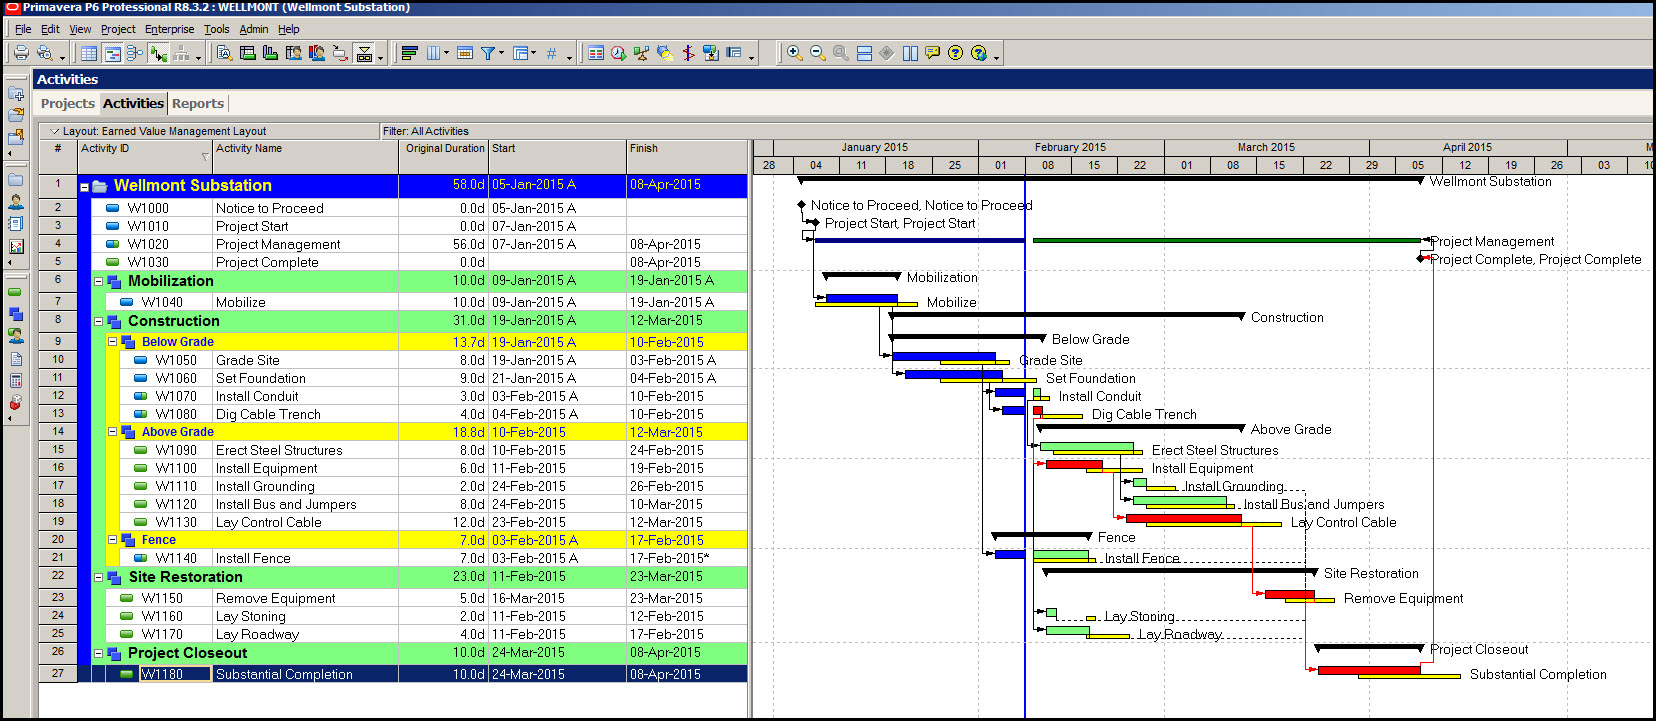 Reporting Schedule Progress P6 Fig 1